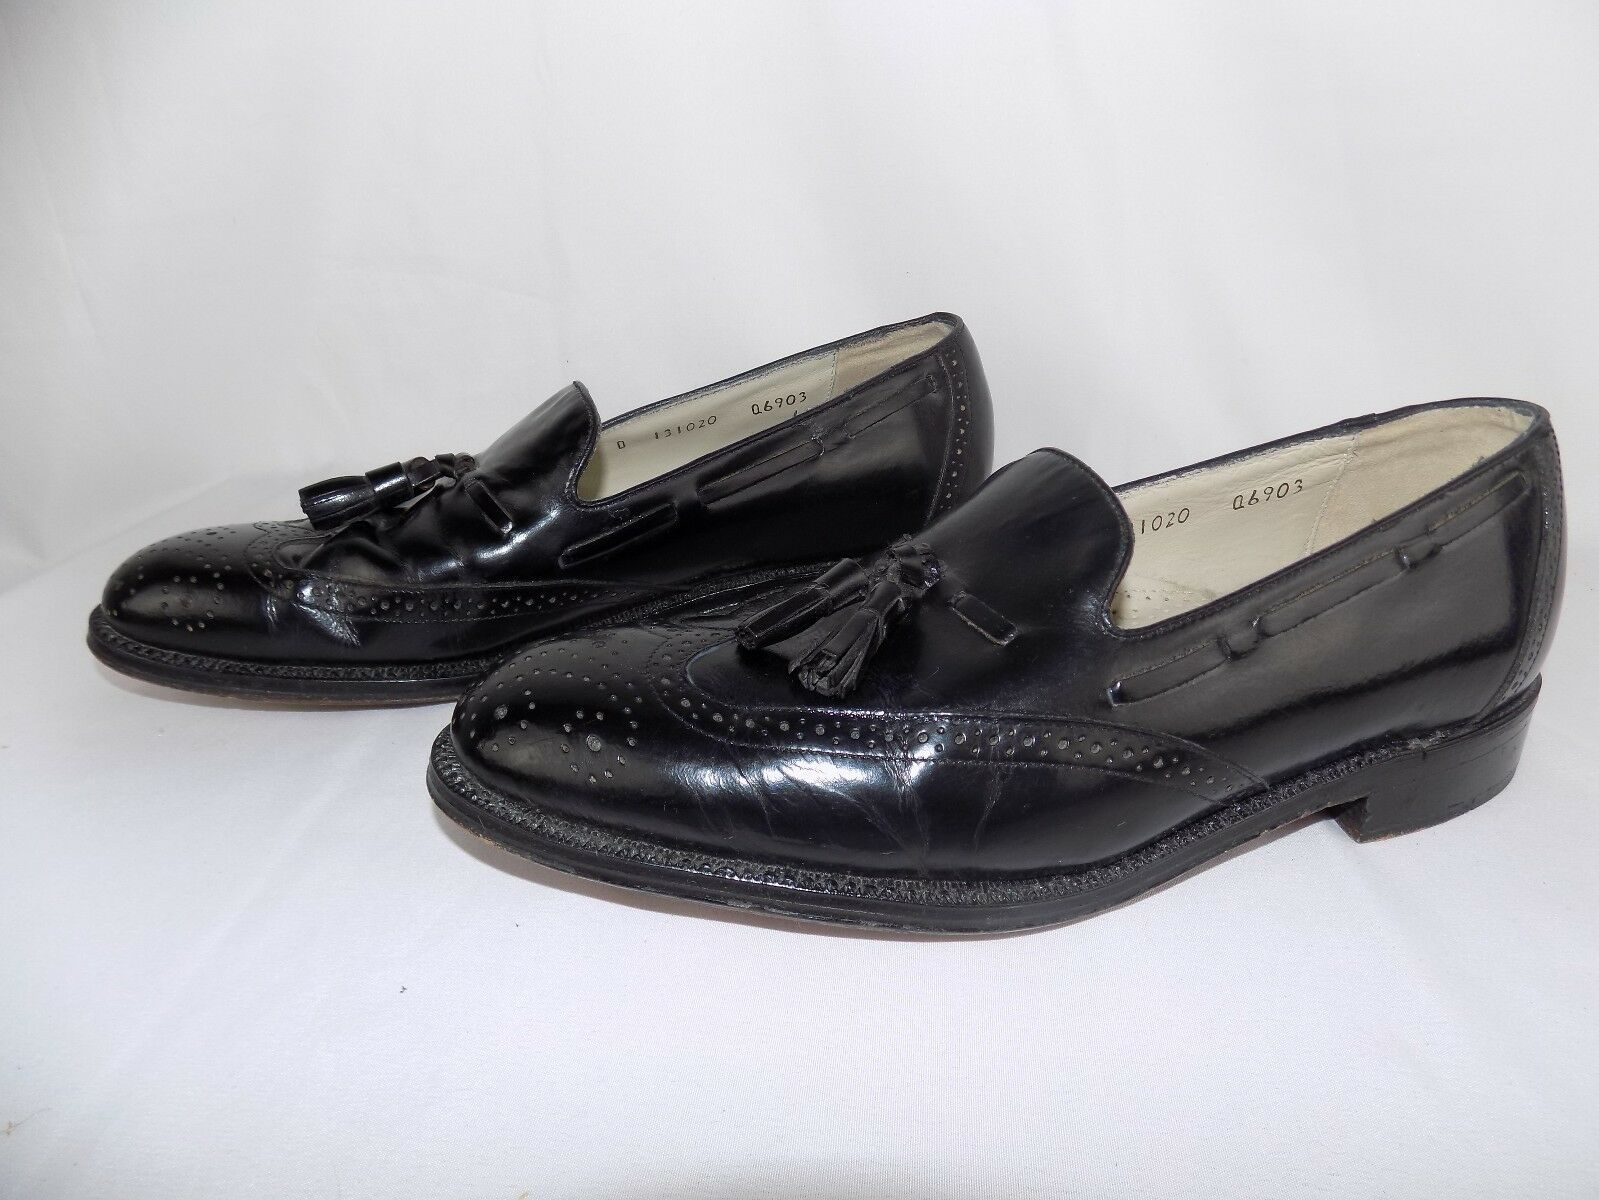 Brownstone Collection Black Leather Tassel Men's Slip On Dress shoes Size 9 D